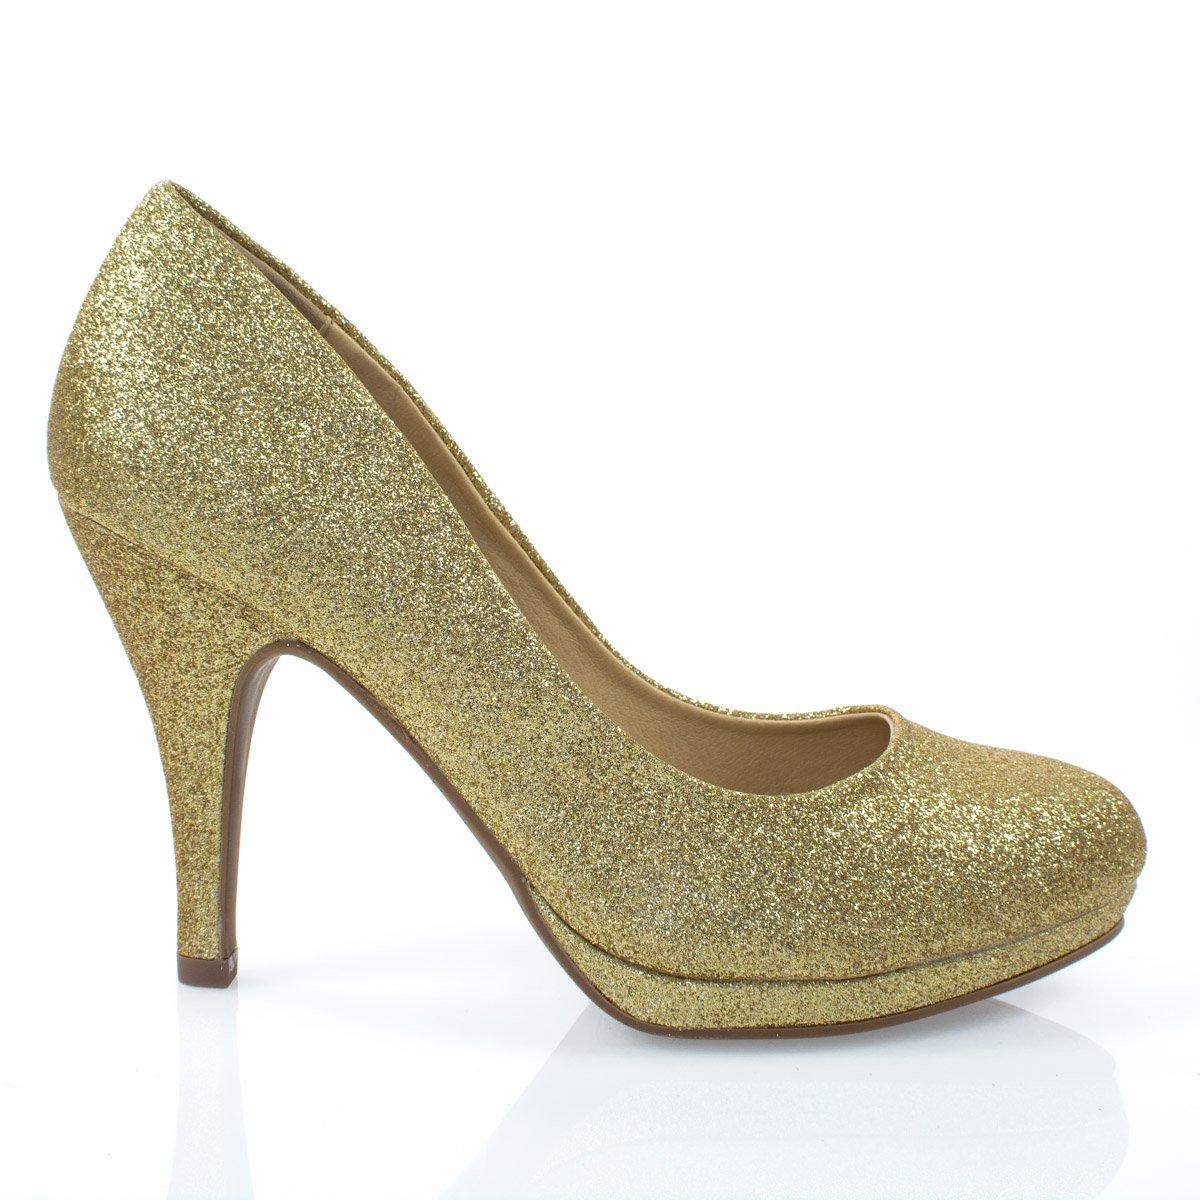 Women's Classic Dress Pump W Extra Cushioned in Sole Round Toe & Platform,Goldglt,8 by City Classified (Image #2)